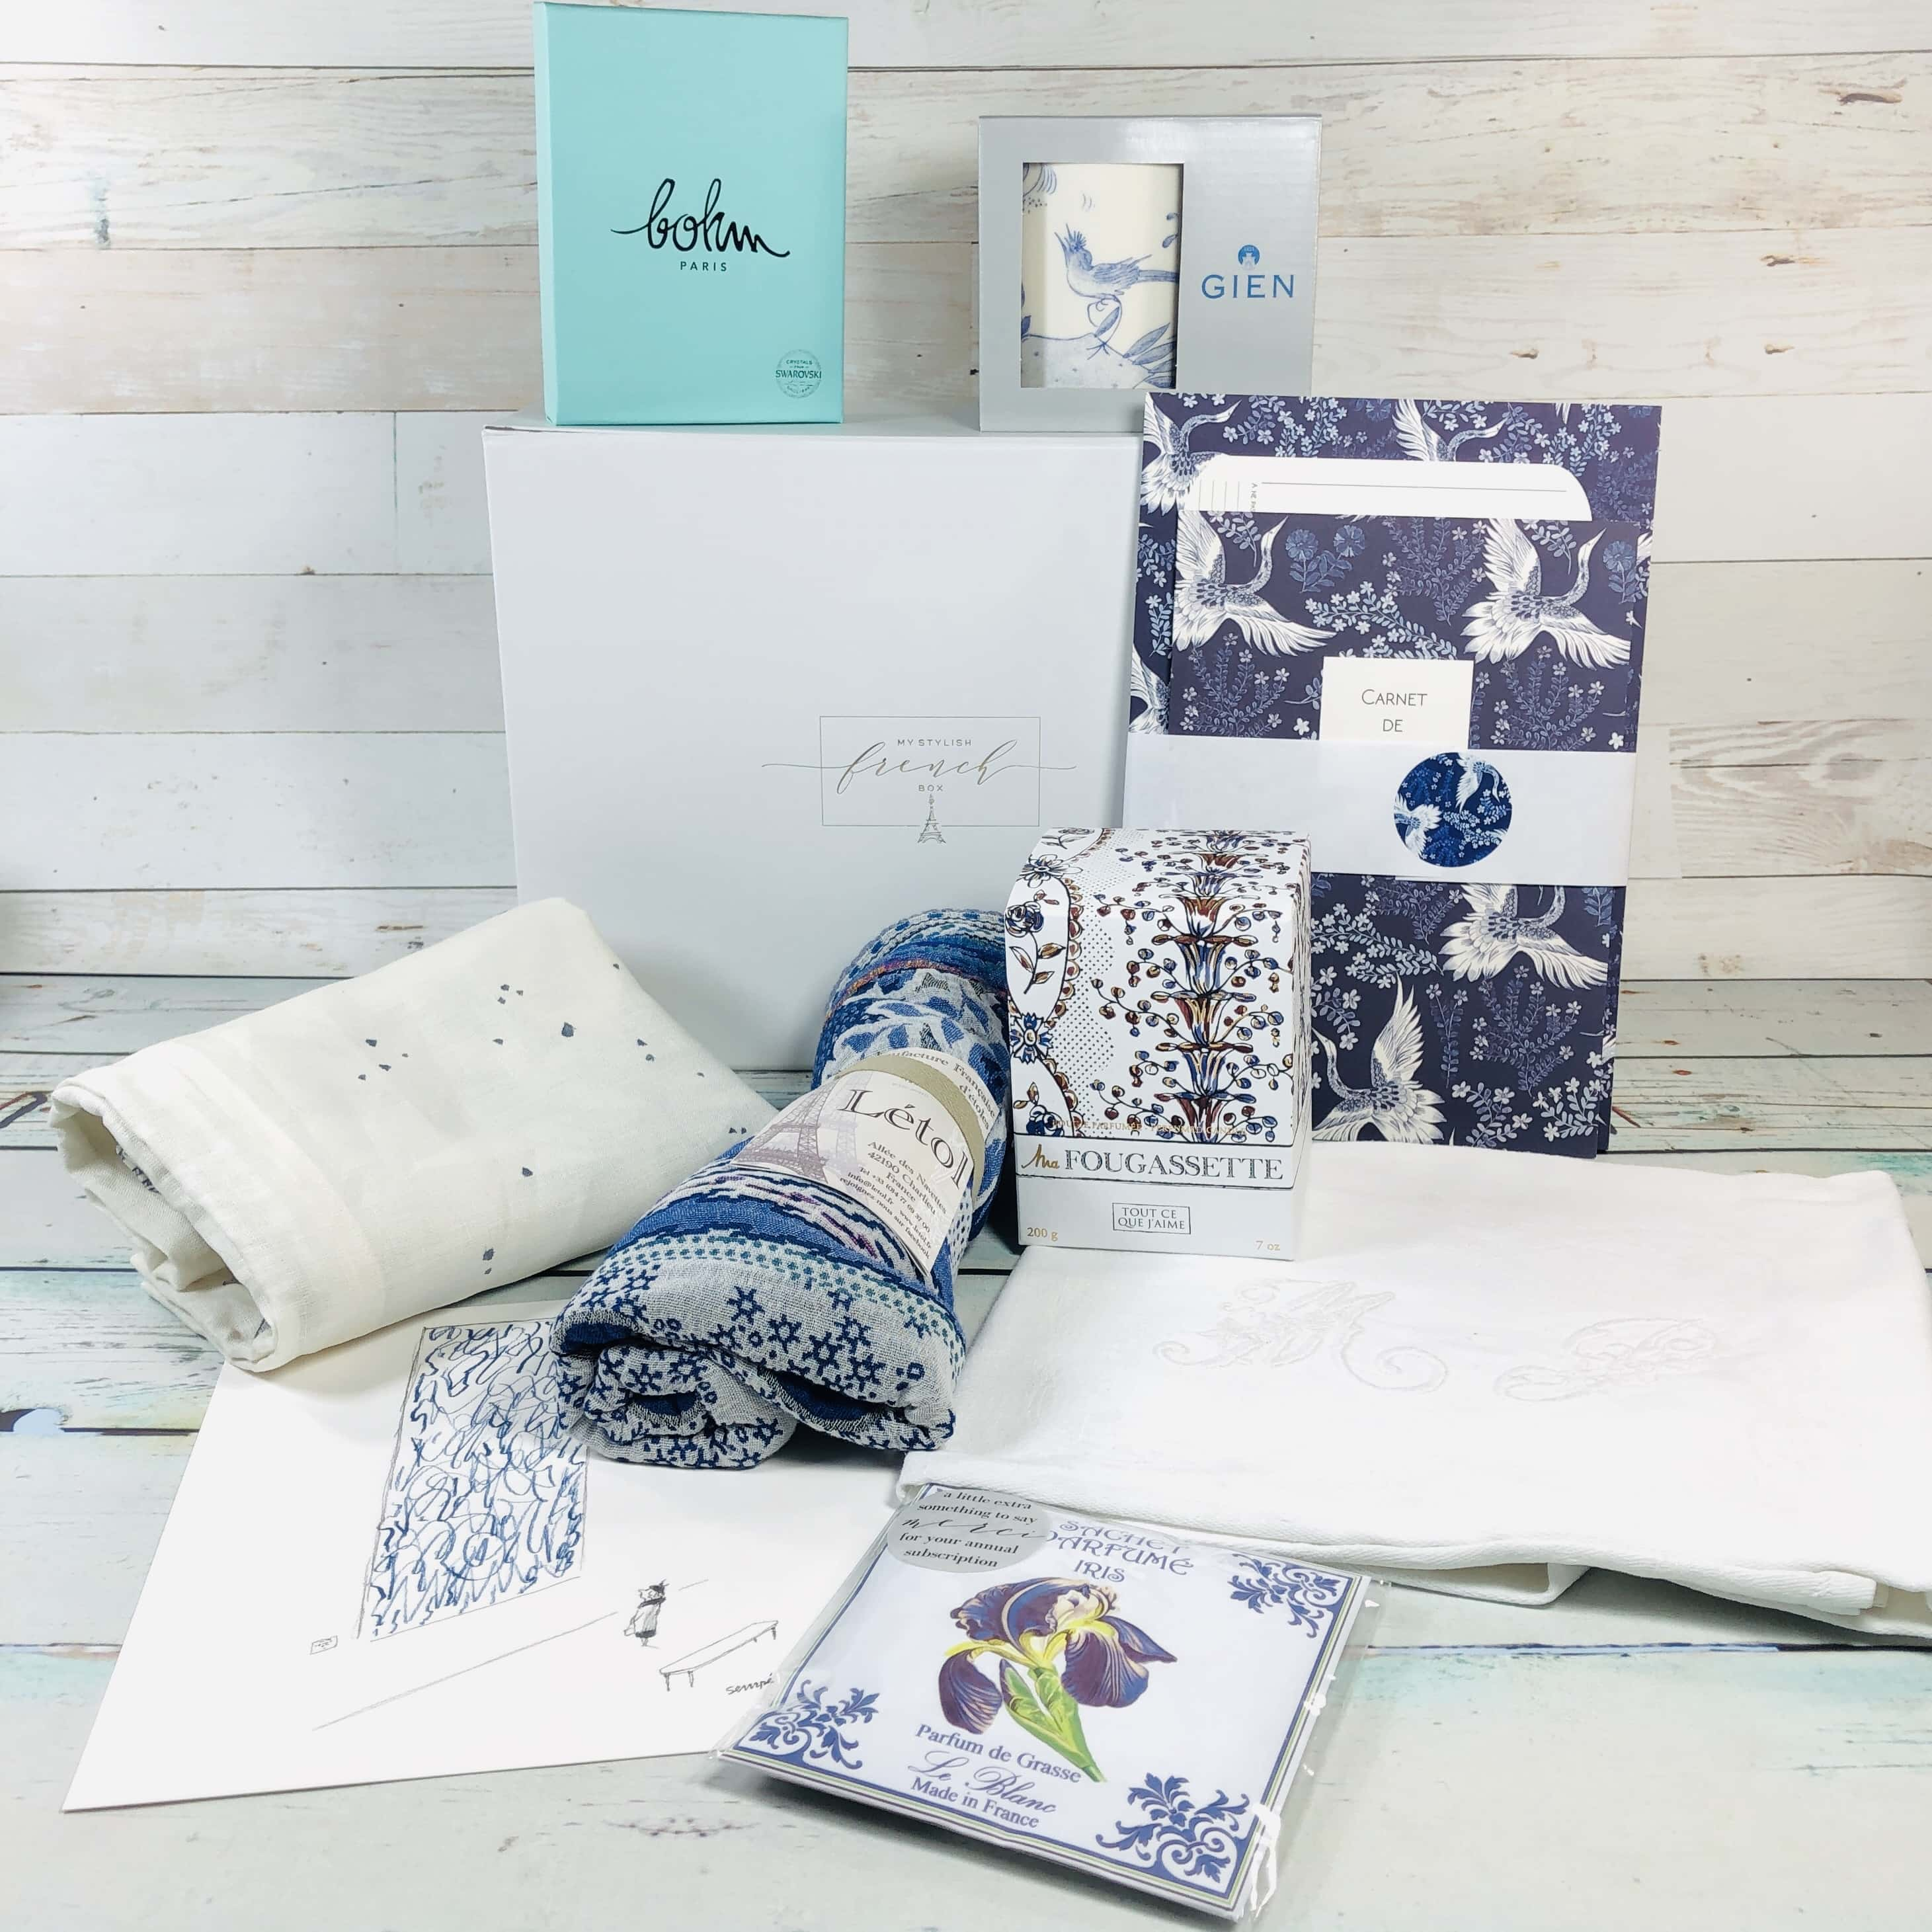 My Stylish French Box May 2019 Subscription Box Review